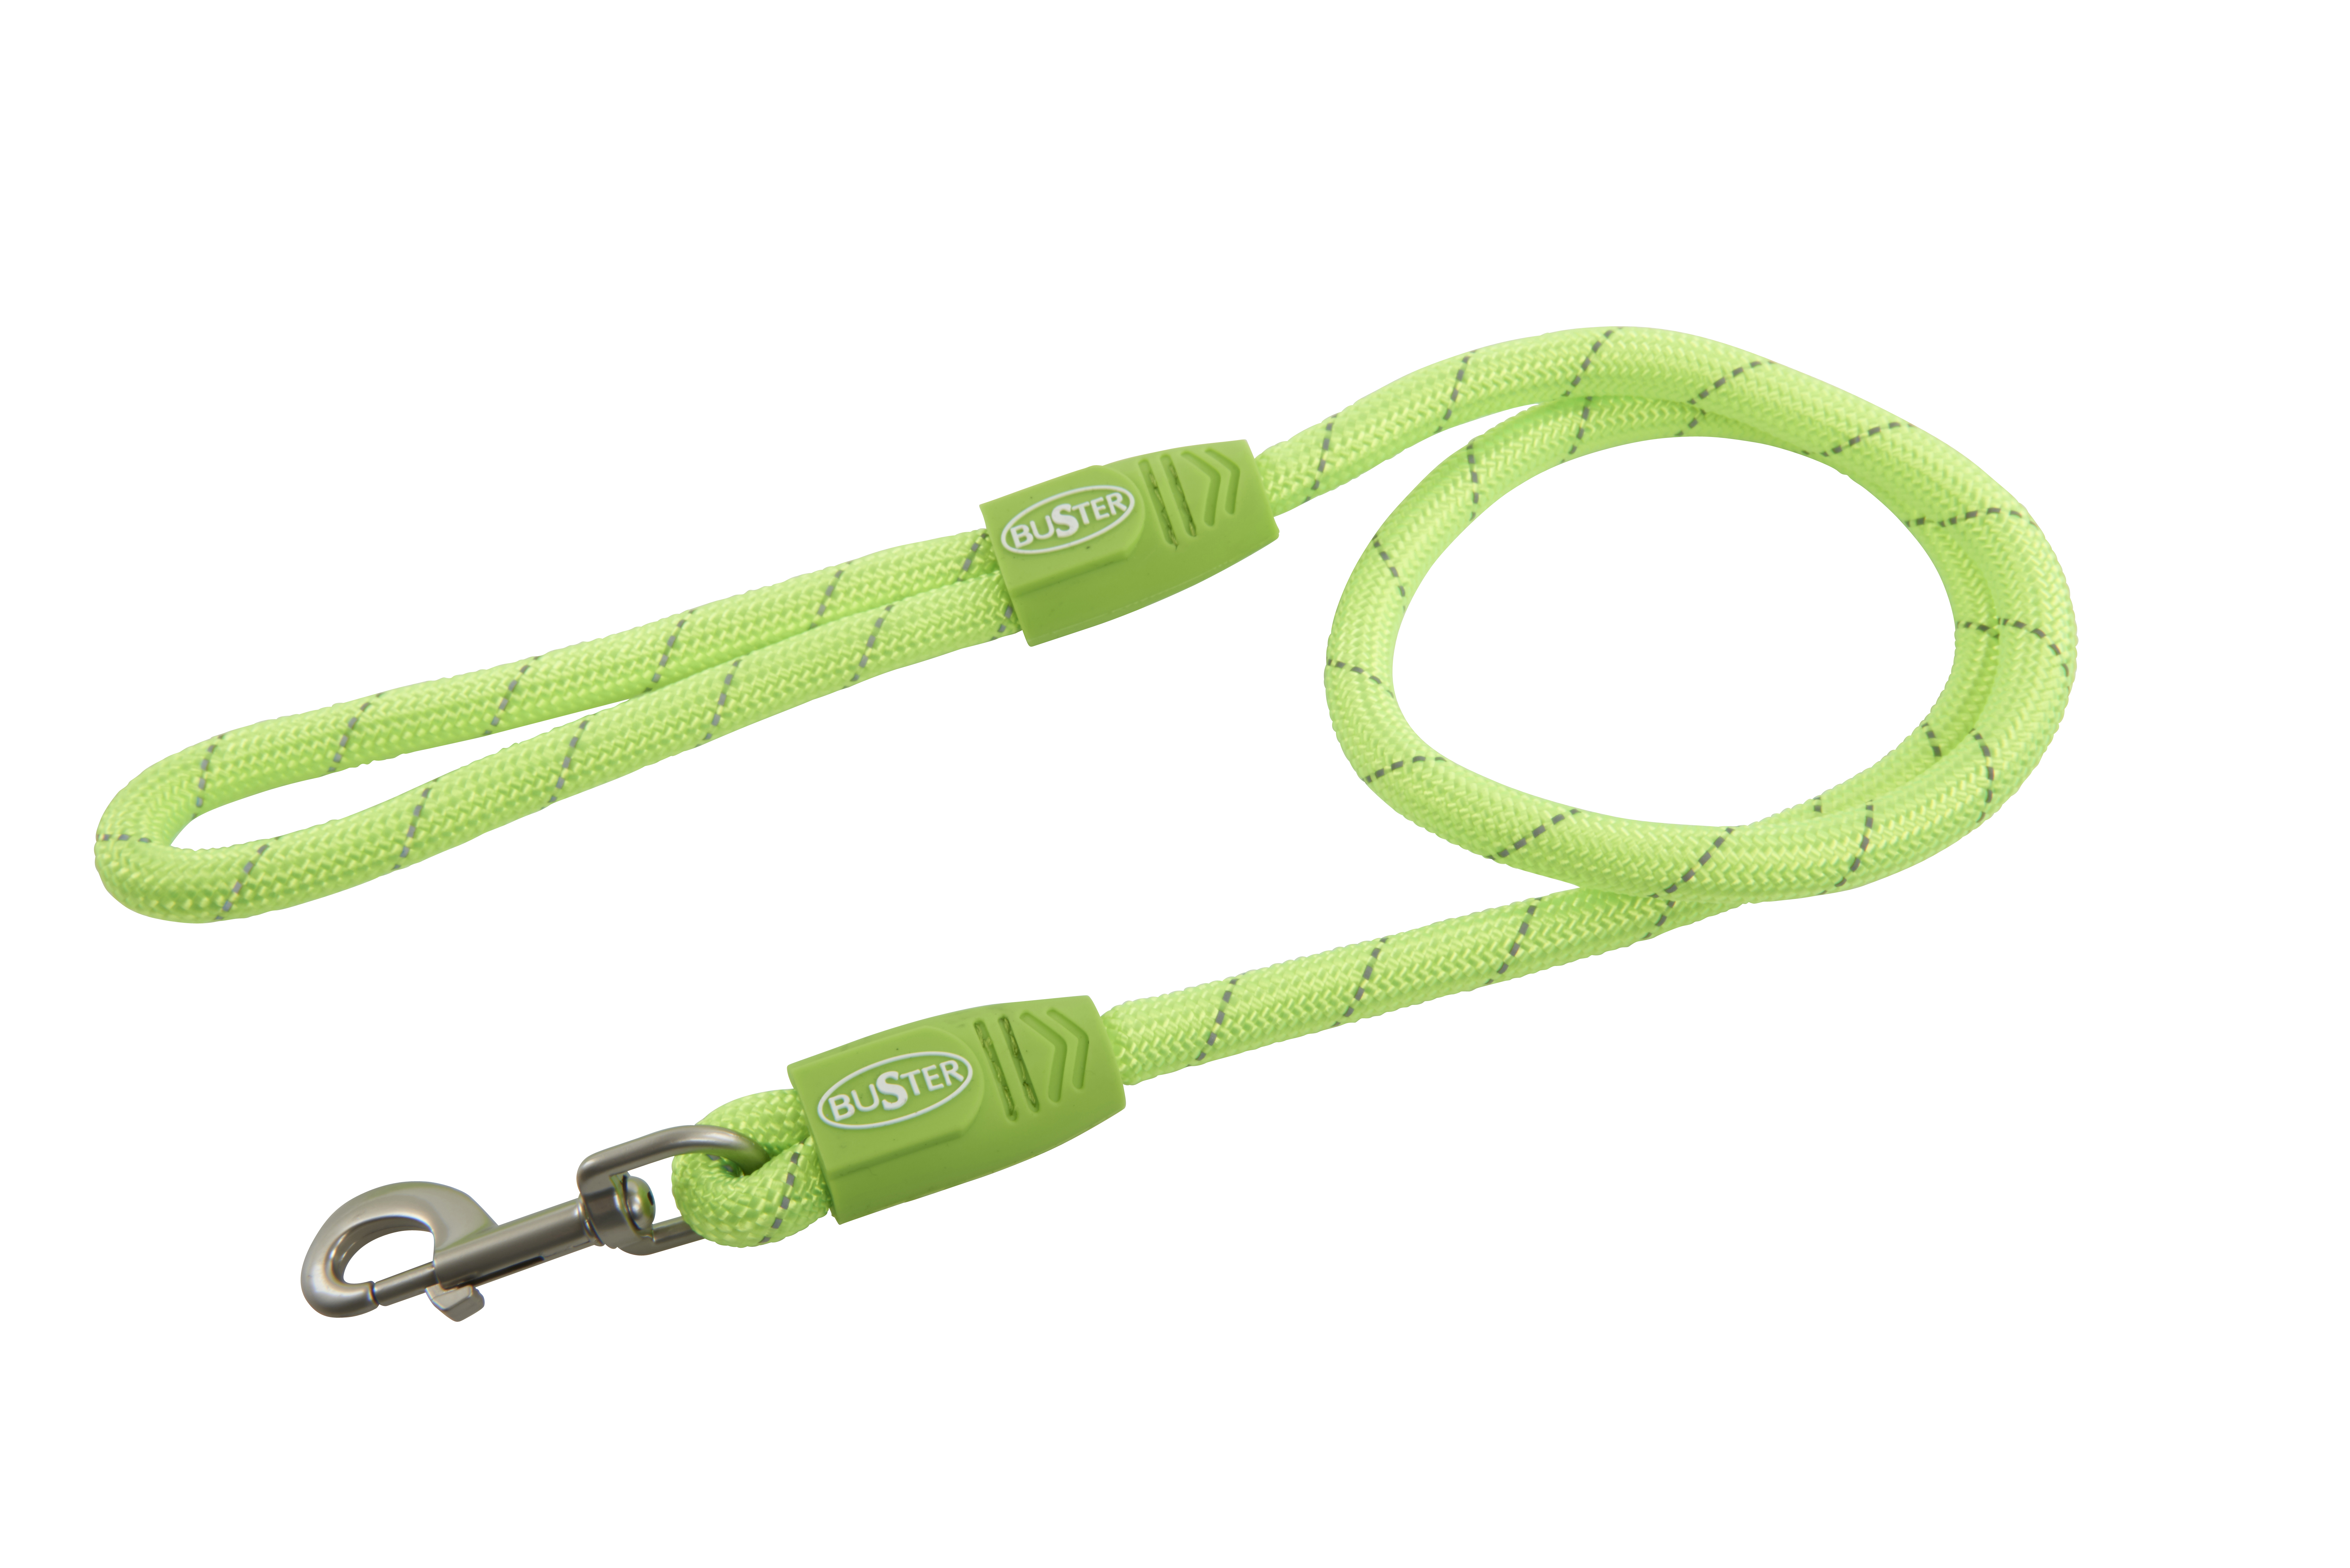 BUSTER Reflective Rope 120 cm Lead, Lime, 13mm